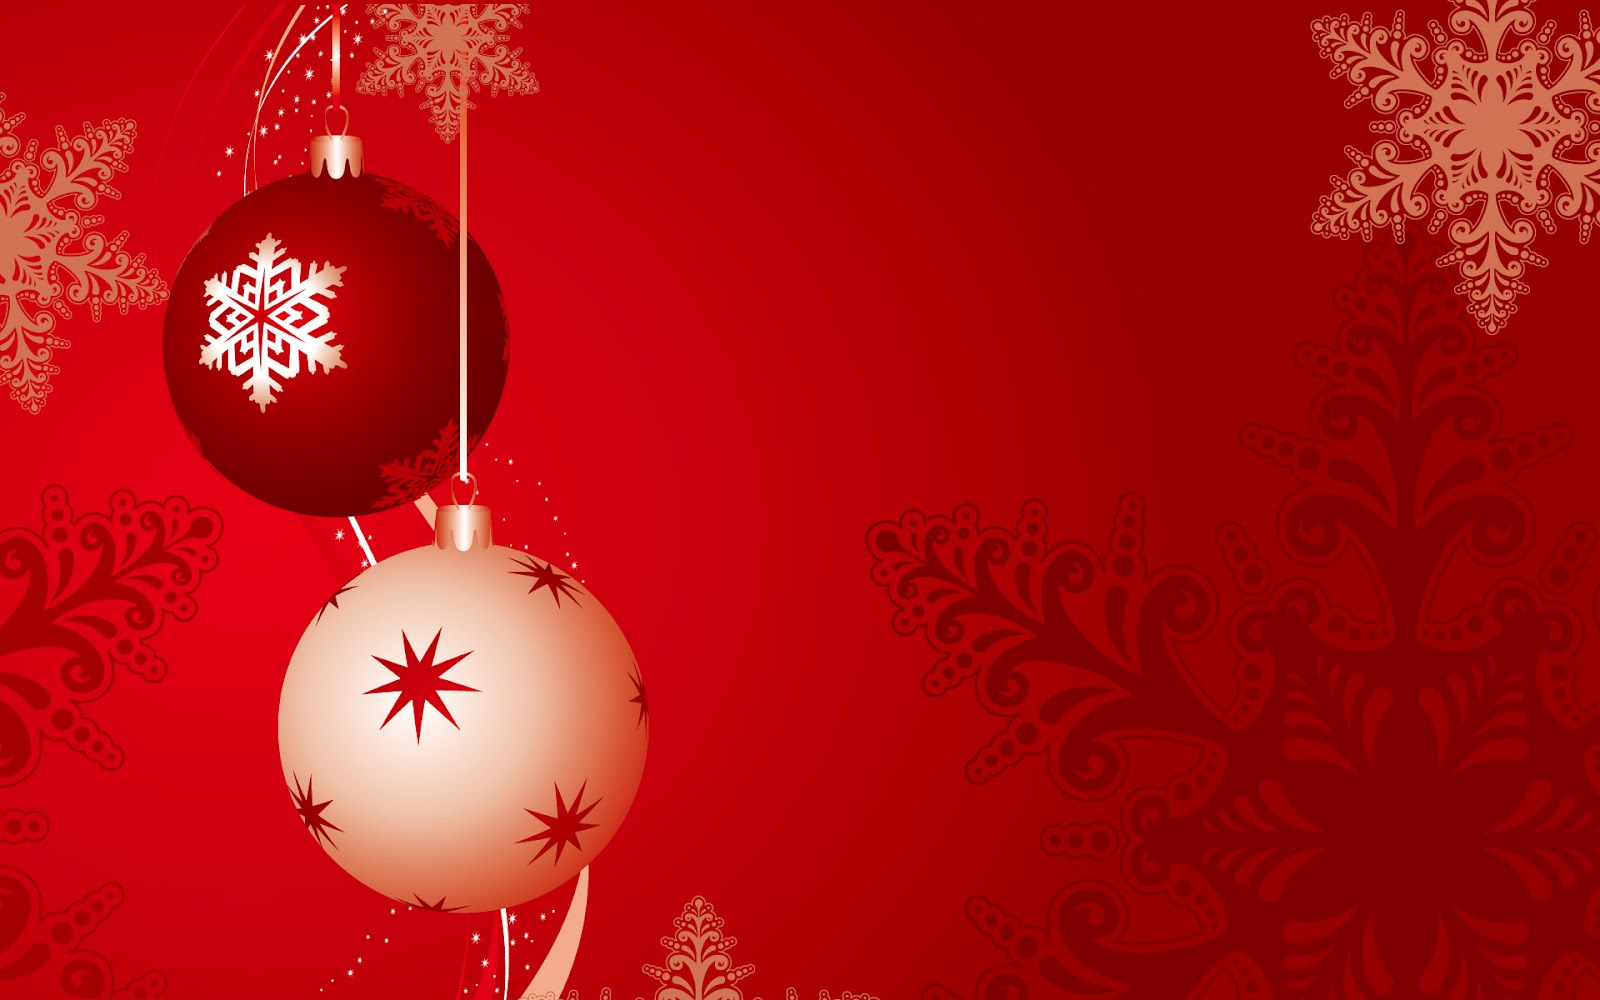 Merry Christmas Wallpaper High Quality New 2015